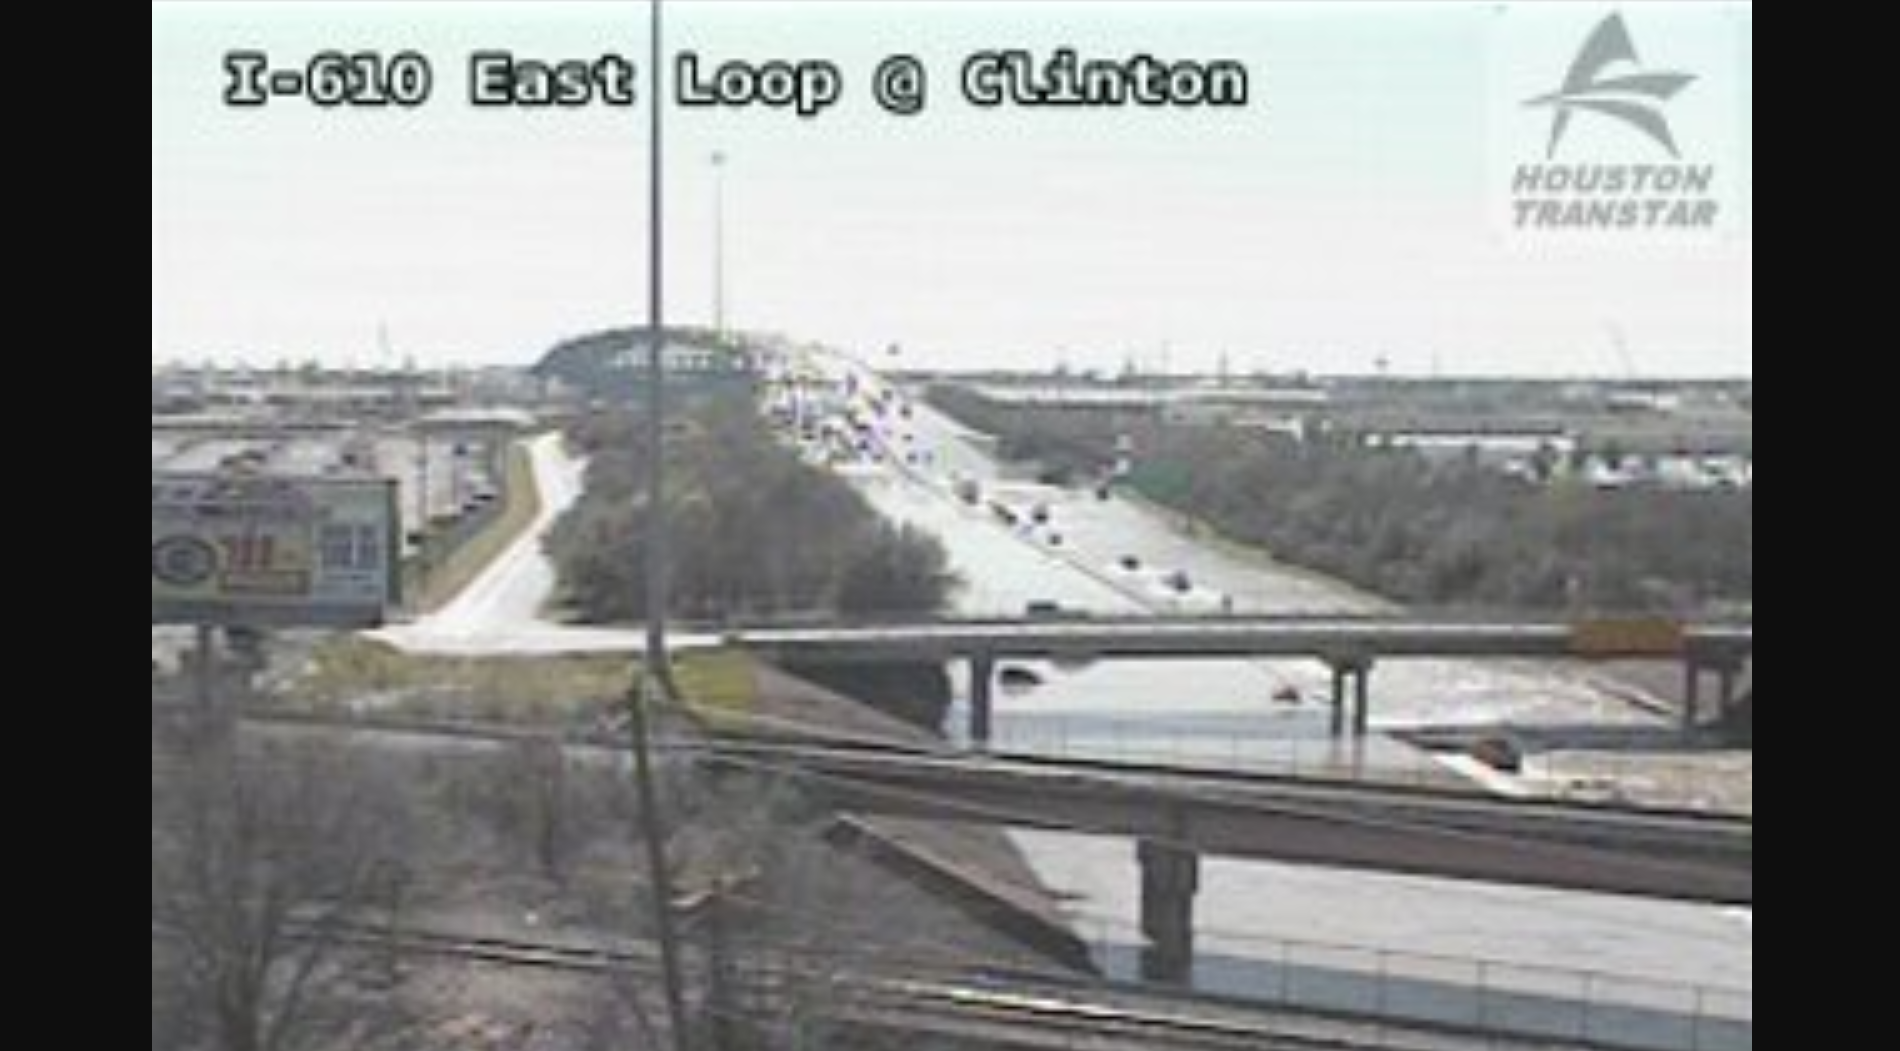 All East Loop 610 lanes flooded, cars under water near Port of Houston